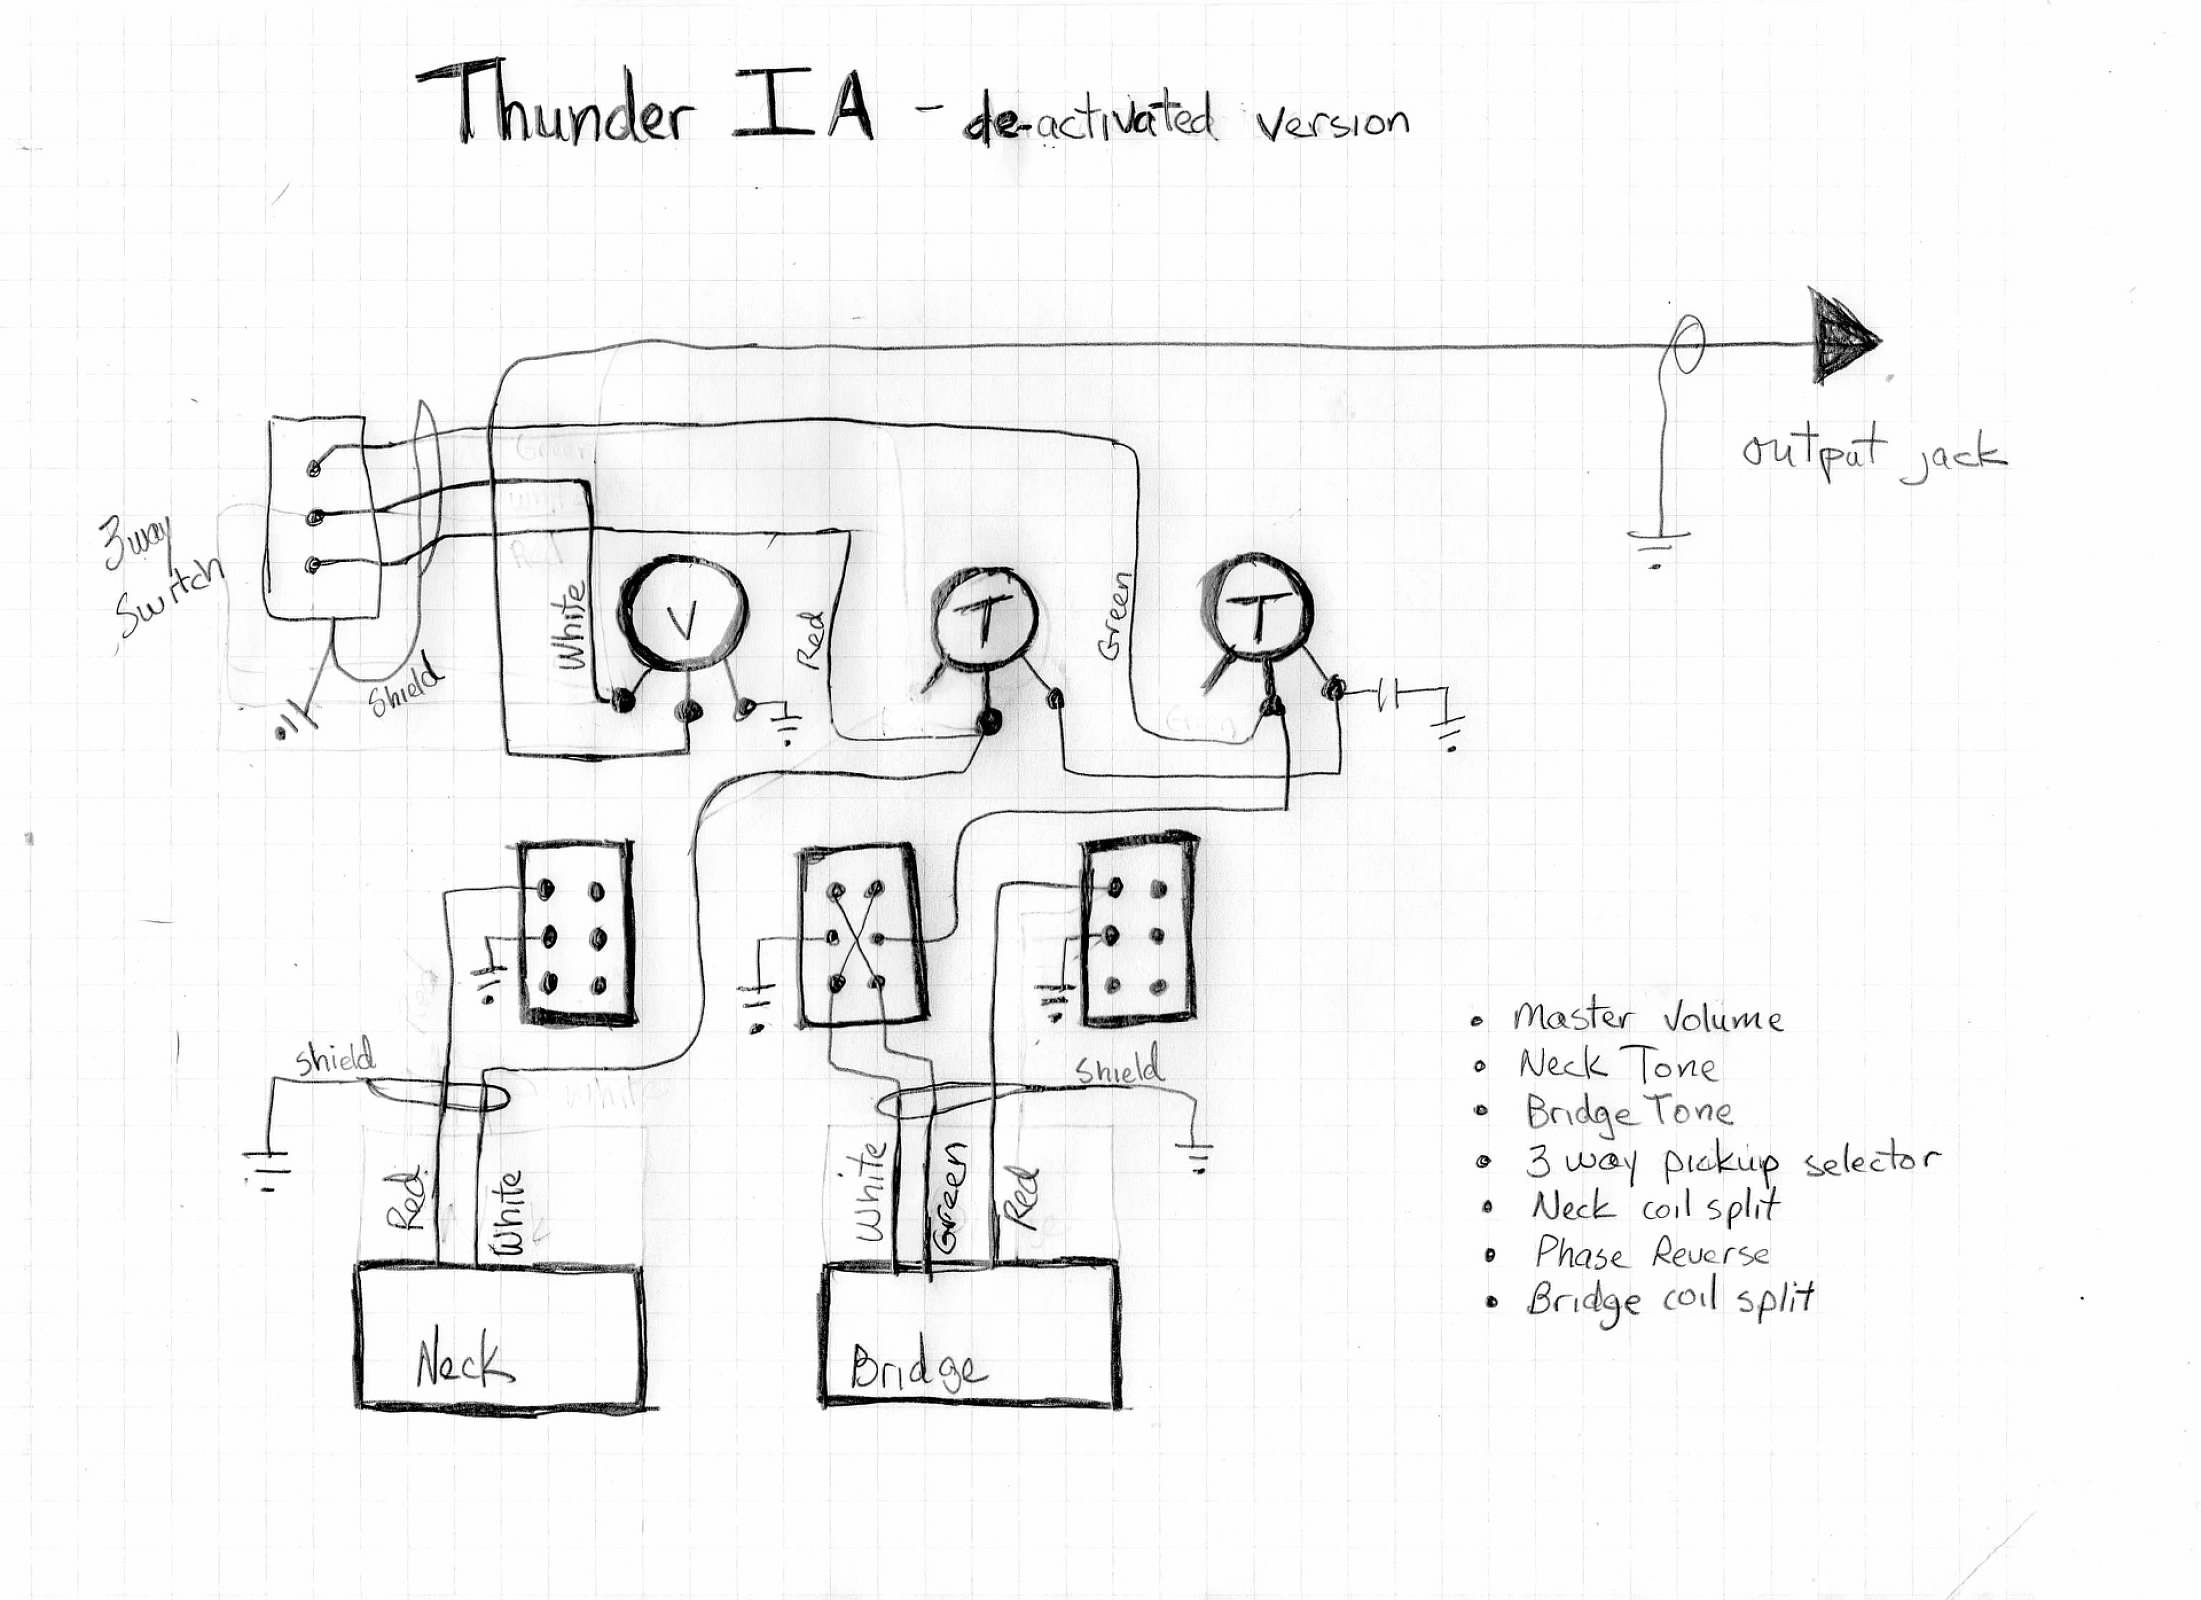 thunder - Westone Thunder II passive wire diagram, switch type and number Enhance